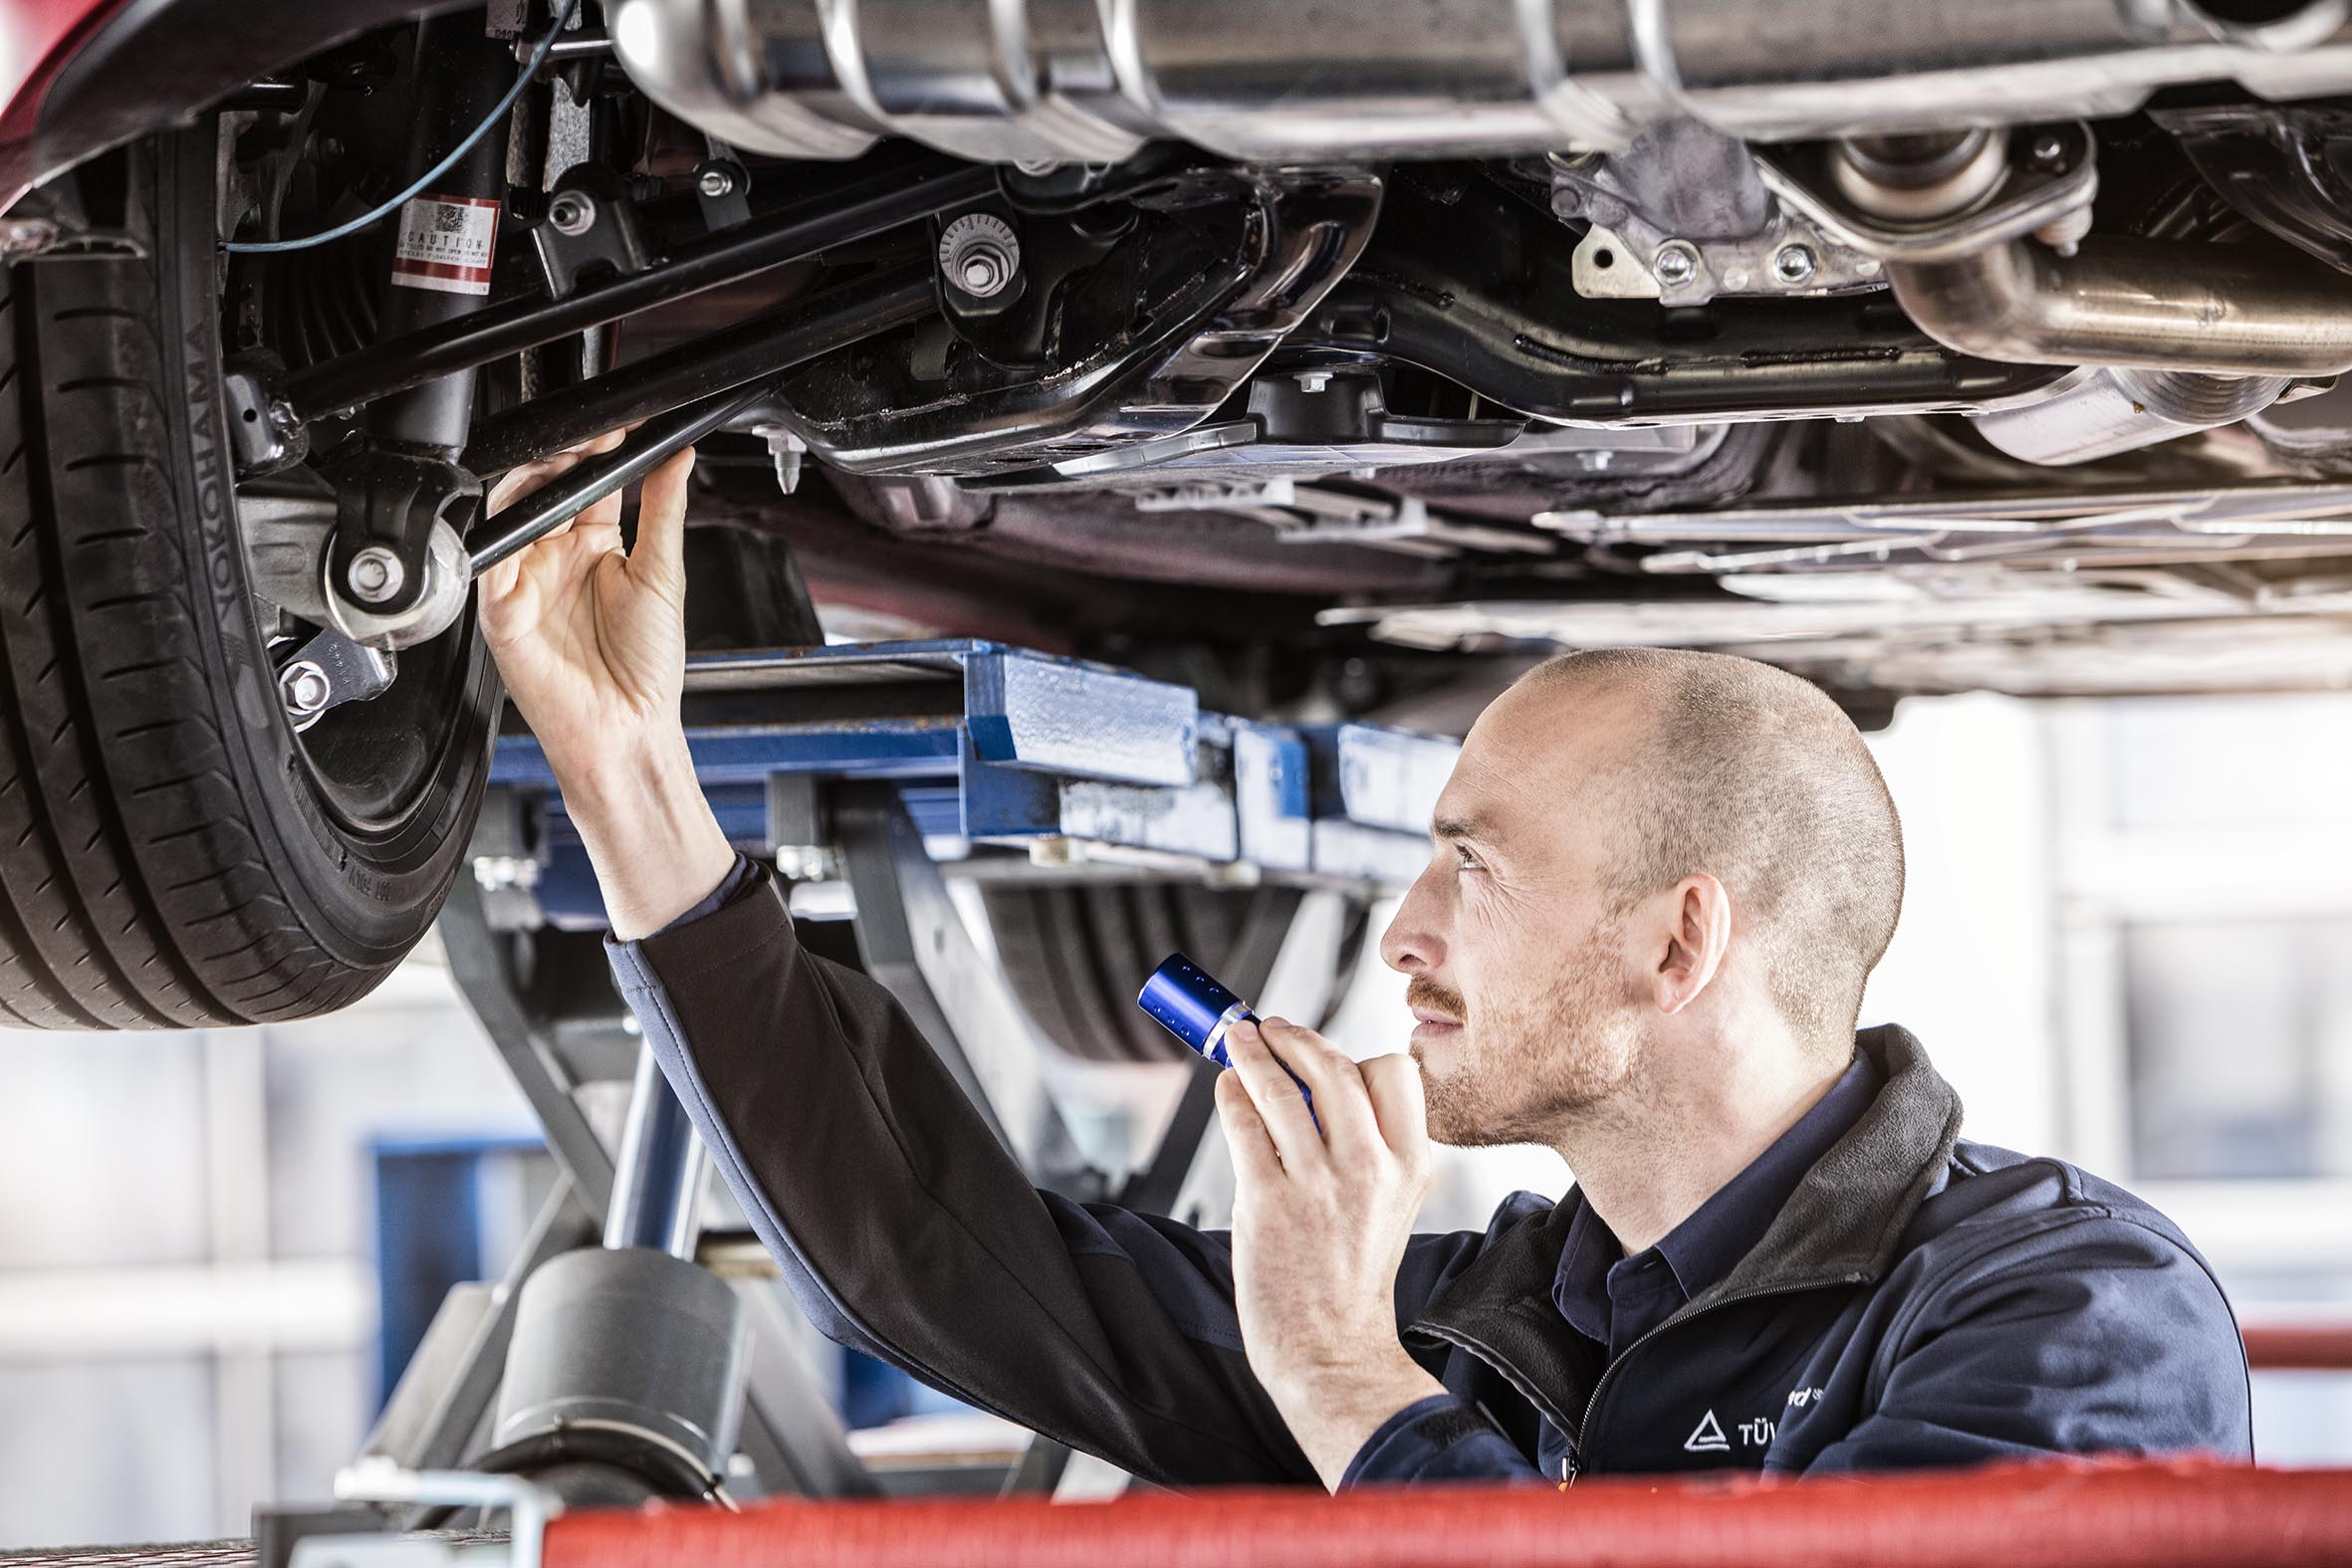 Car Inspection in Qatar: Is it credible?